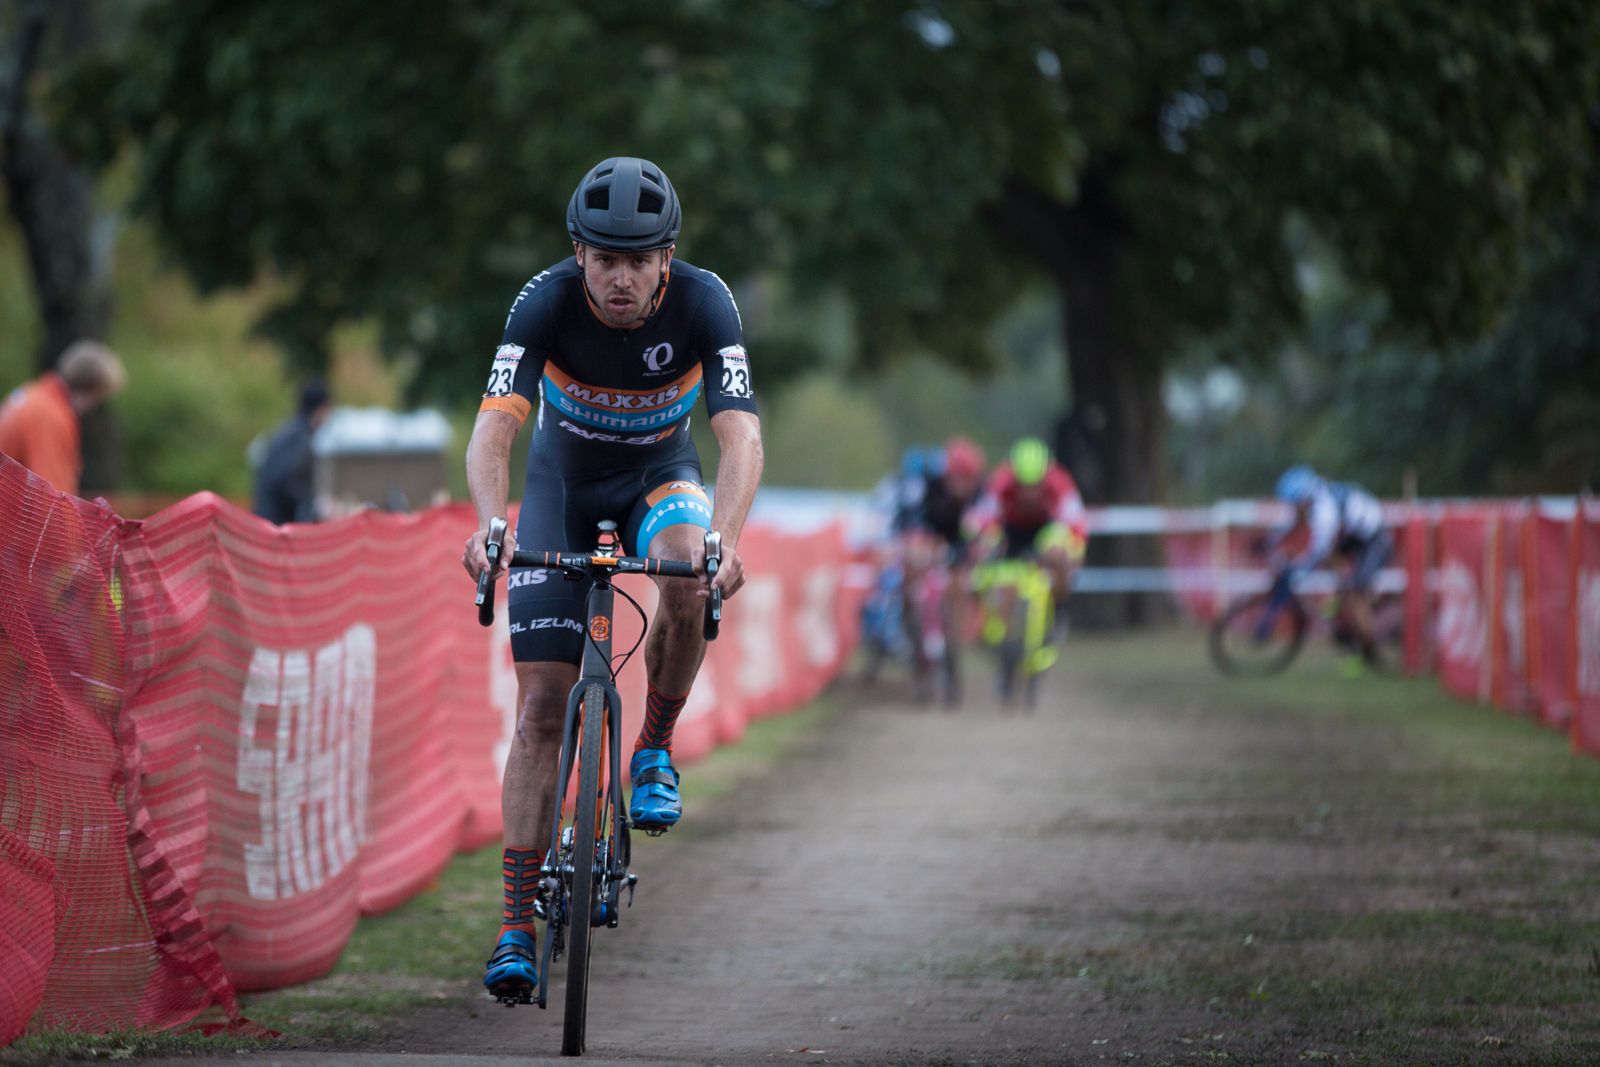 Maxxis-Shimano Professional Cyclocross Team, powered by PARLEE